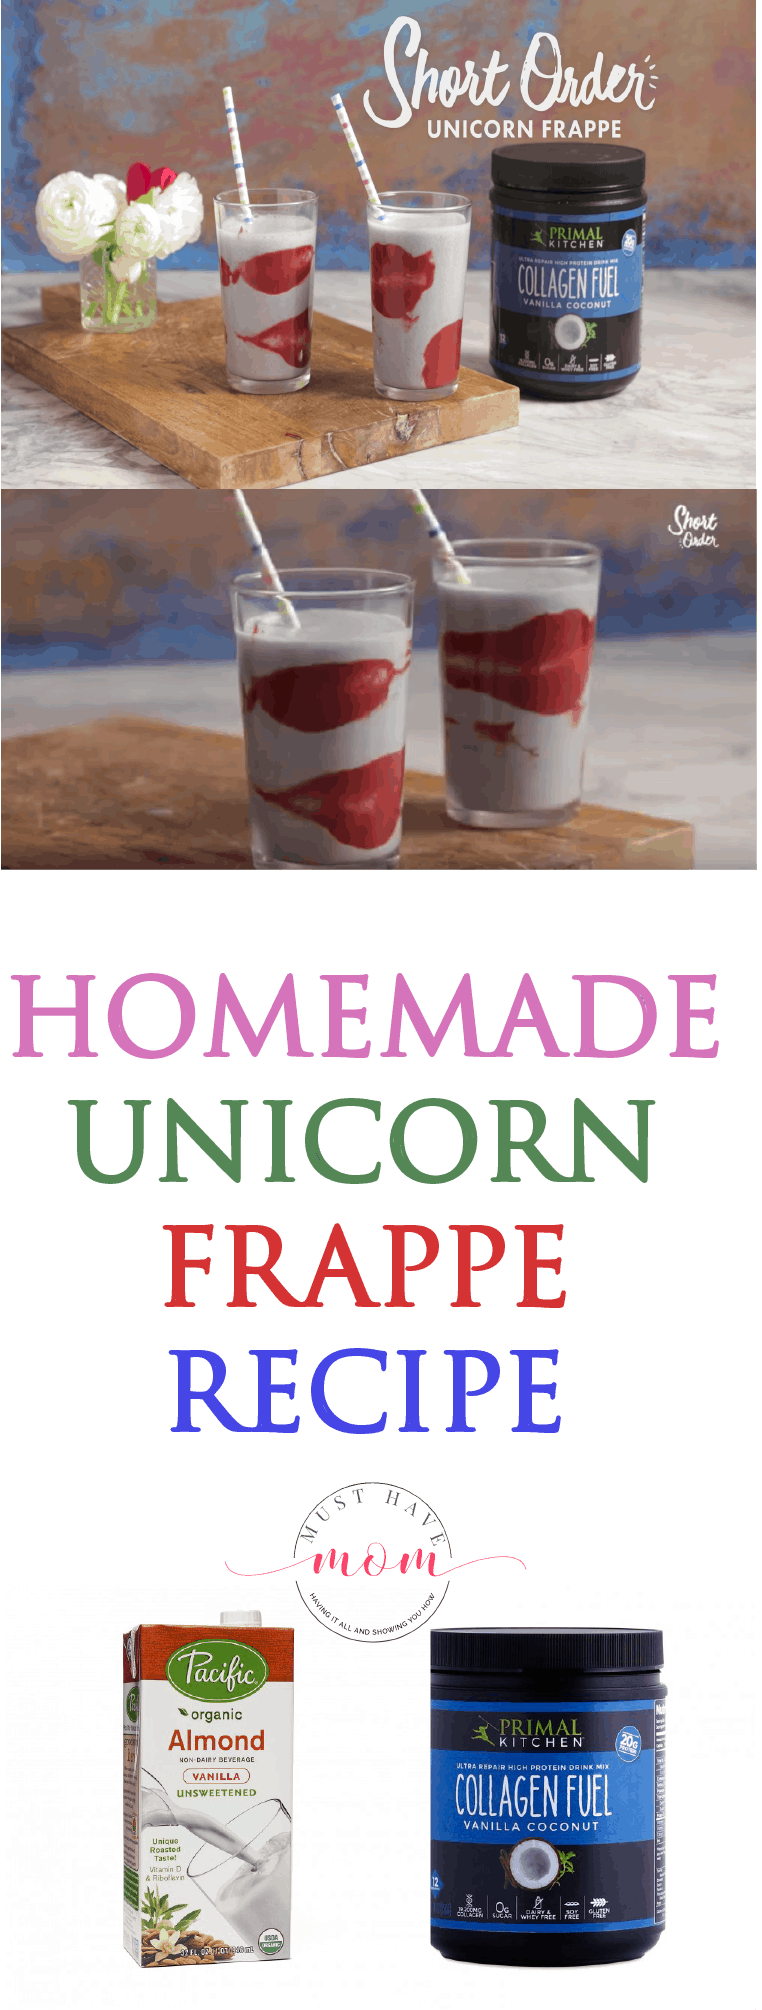 This homemade Unicorn Frappe recipe is easy to make, and features banana, coconut, and strawberry flavors.  A perfect drink for summer.